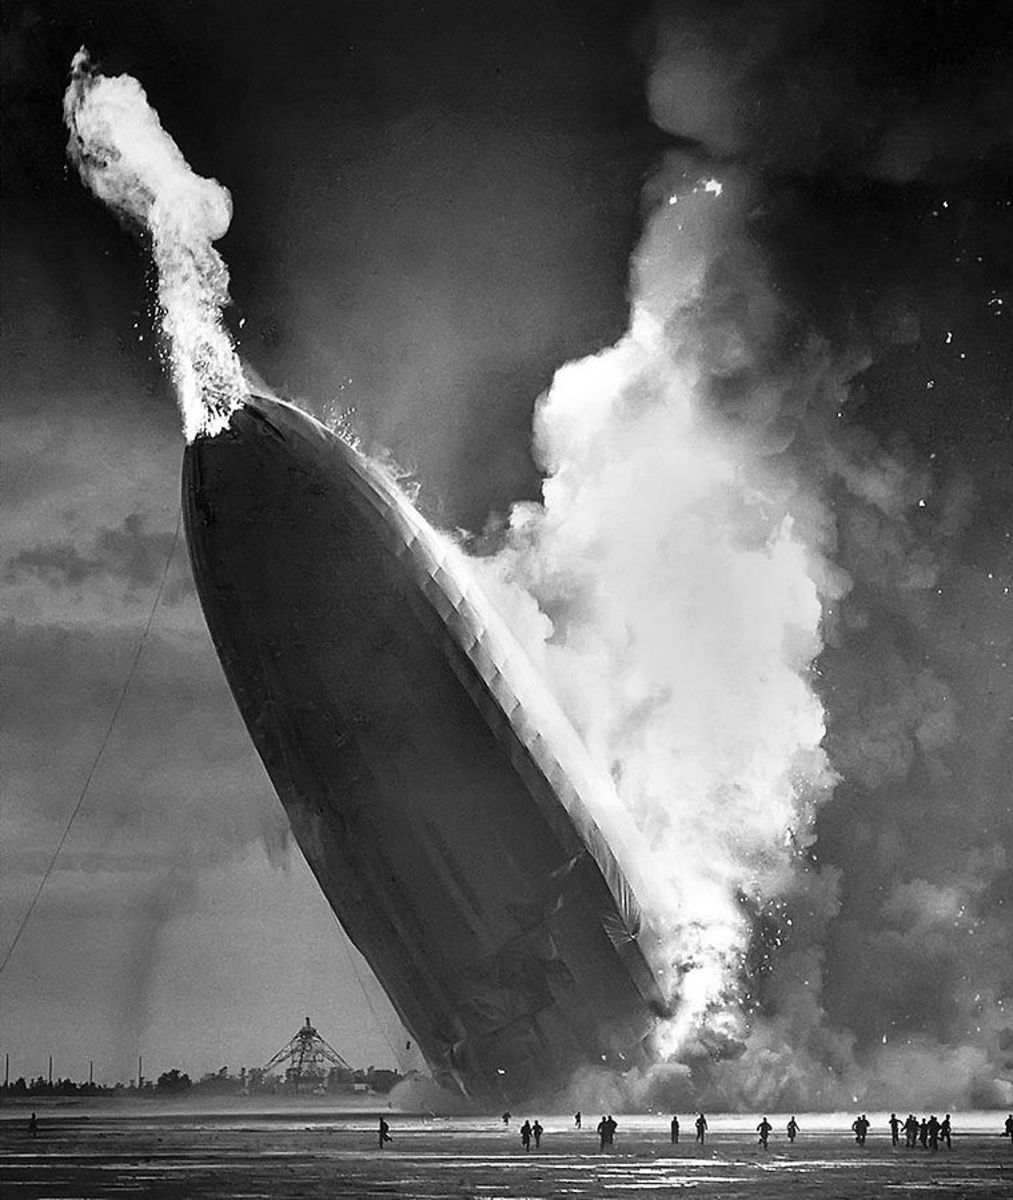 The Hindenburg accident probably set back hydrogen research by several decades.